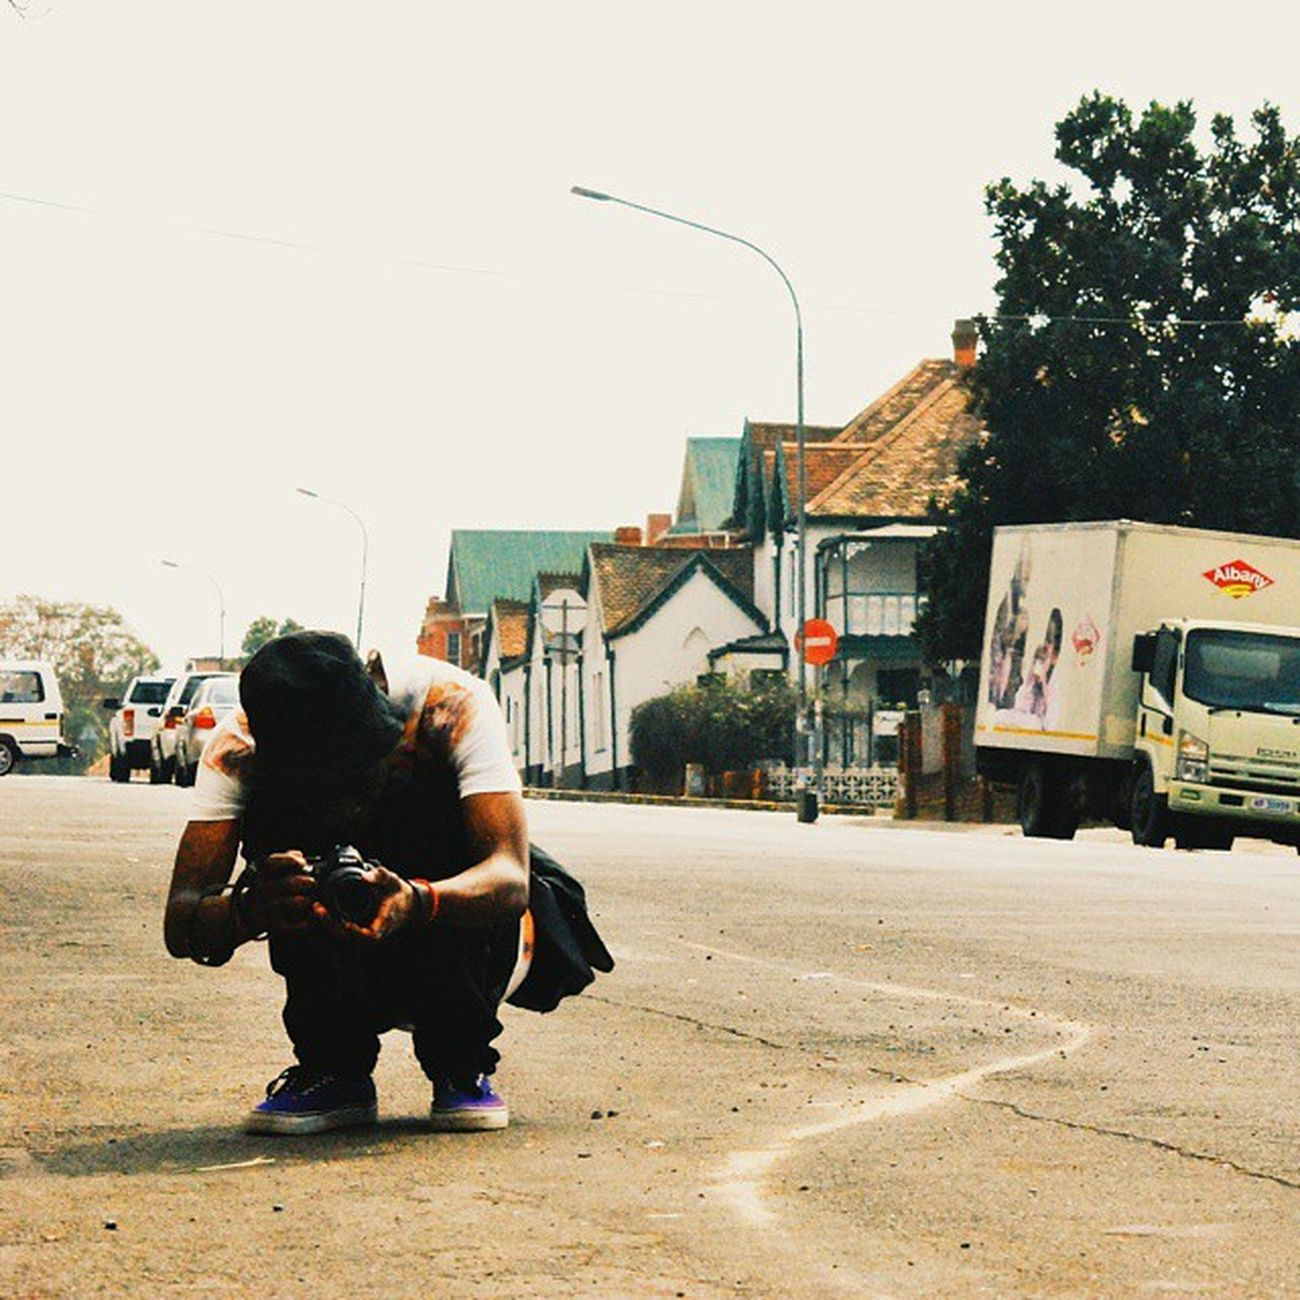 The faceless man. (1 of 2) Caught Somewhereinsouthafrica Instagram_sa Streetphotography nikon igers southafrica portrait faceless street instacool igmasters vsco vscophile vscolab vscosouthafrica albany truck contrast colour streetculture africa hot_shotz pietermaritzburg instawalk crouch angles vintage quaint 091014